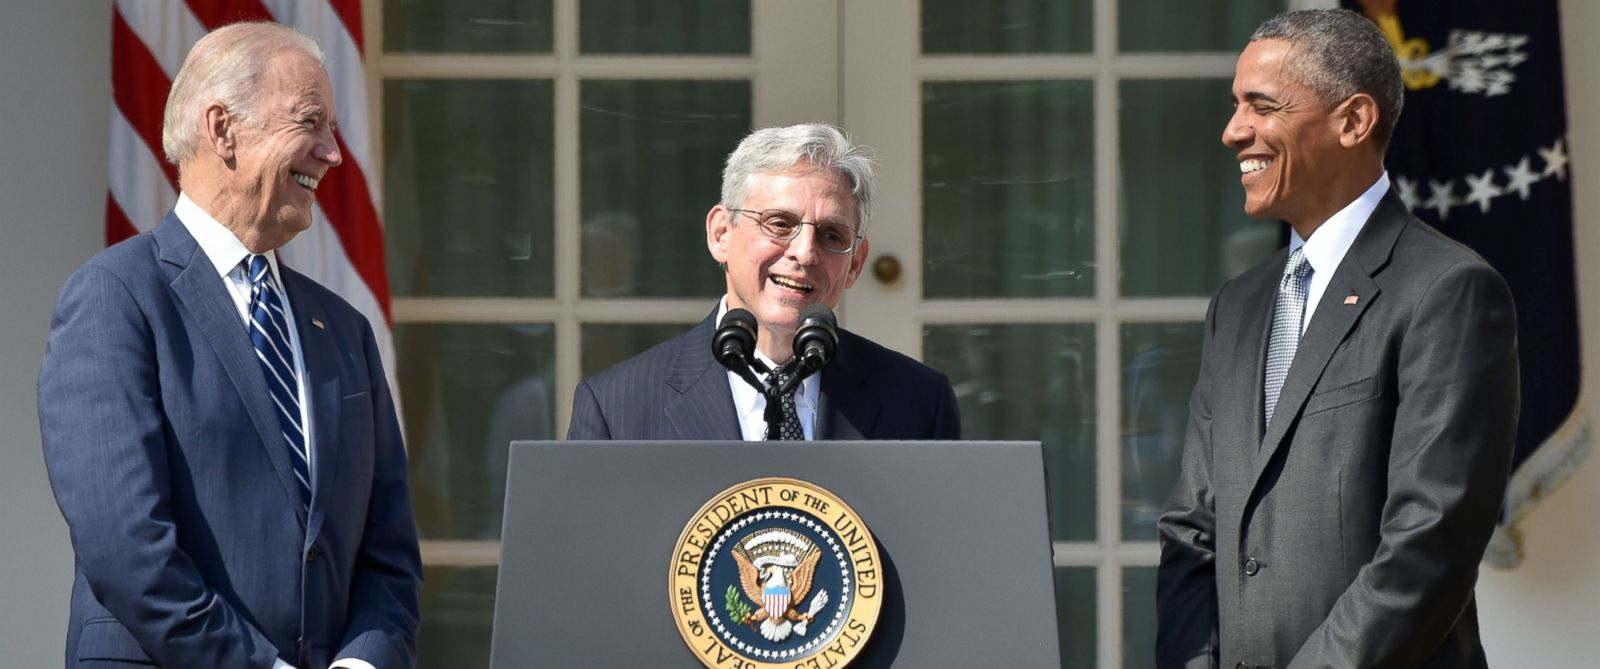 PHOTO: Judge Merrick Garland speaks, after President Barack Obama announced Garlands nomination to the US Supreme Court, in the Rose Garden at the White House in Washington, March 16, 2016.